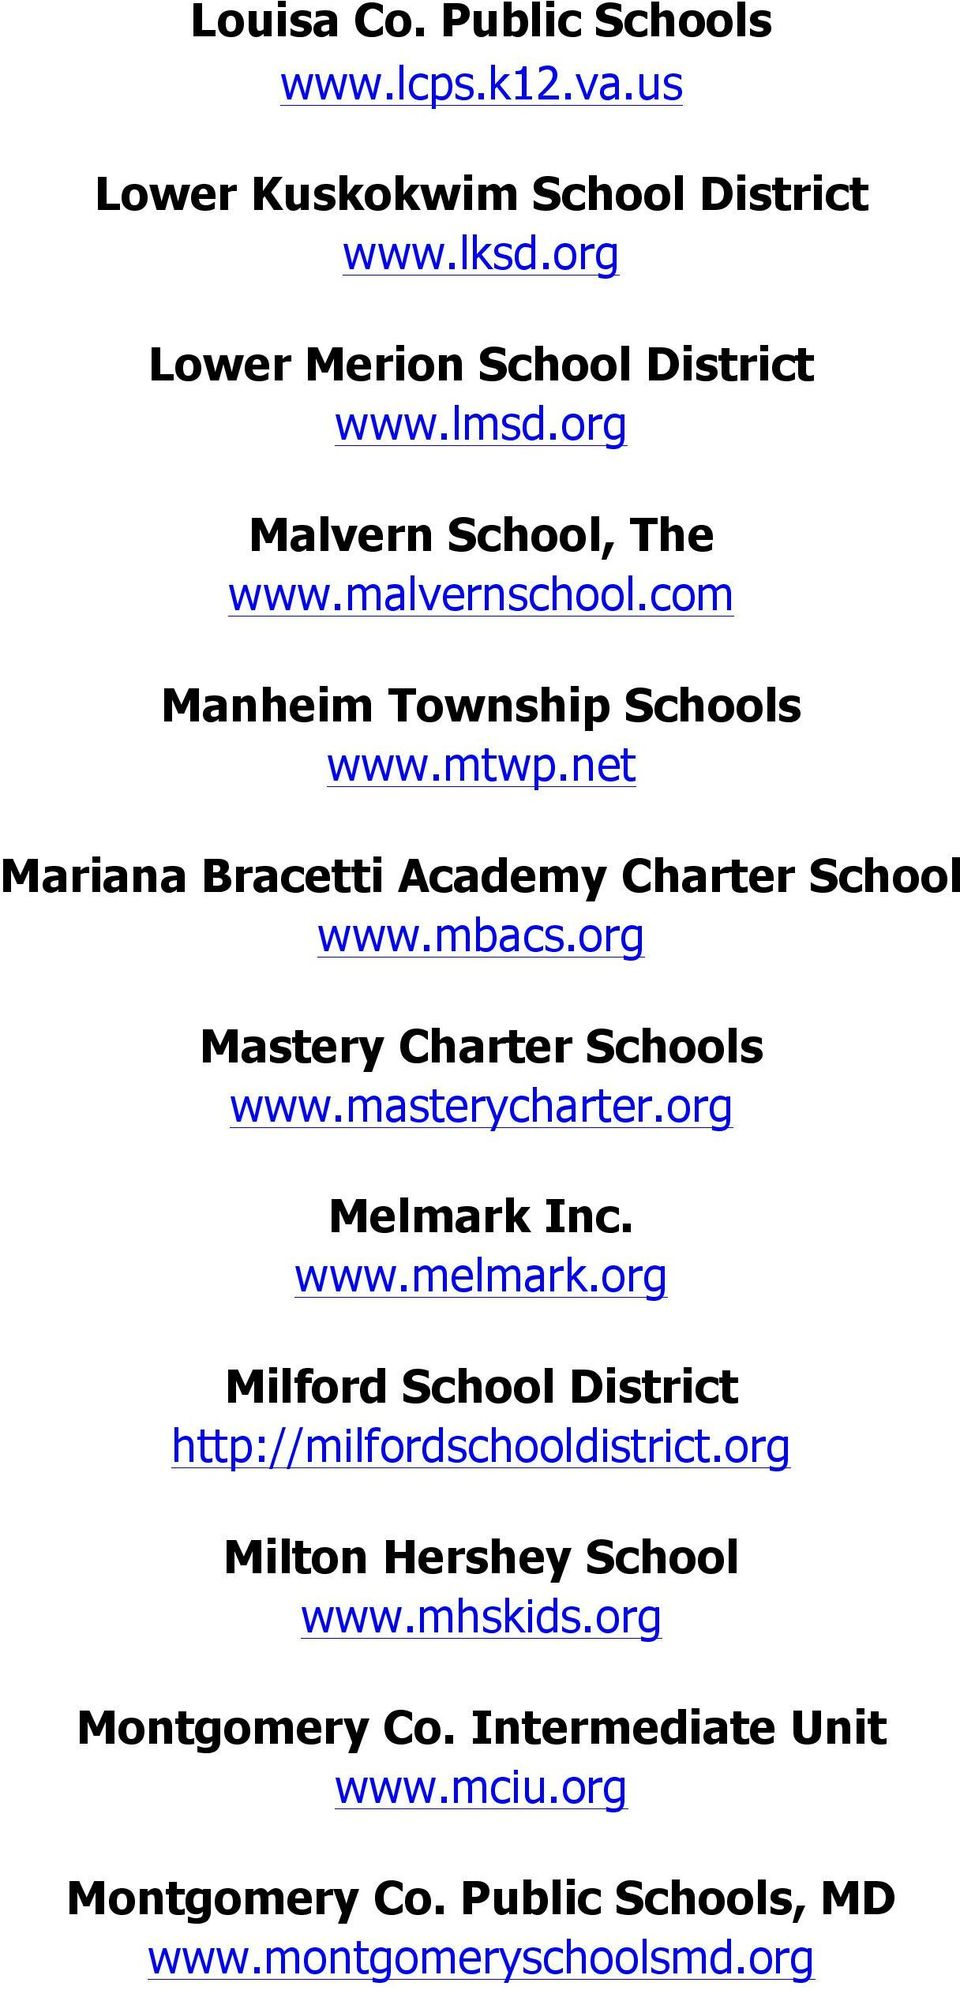 org Mastery Charter Schools www.masterycharter.org Melmark Inc. www.melmark.org Milford School District http://milfordschooldistrict.